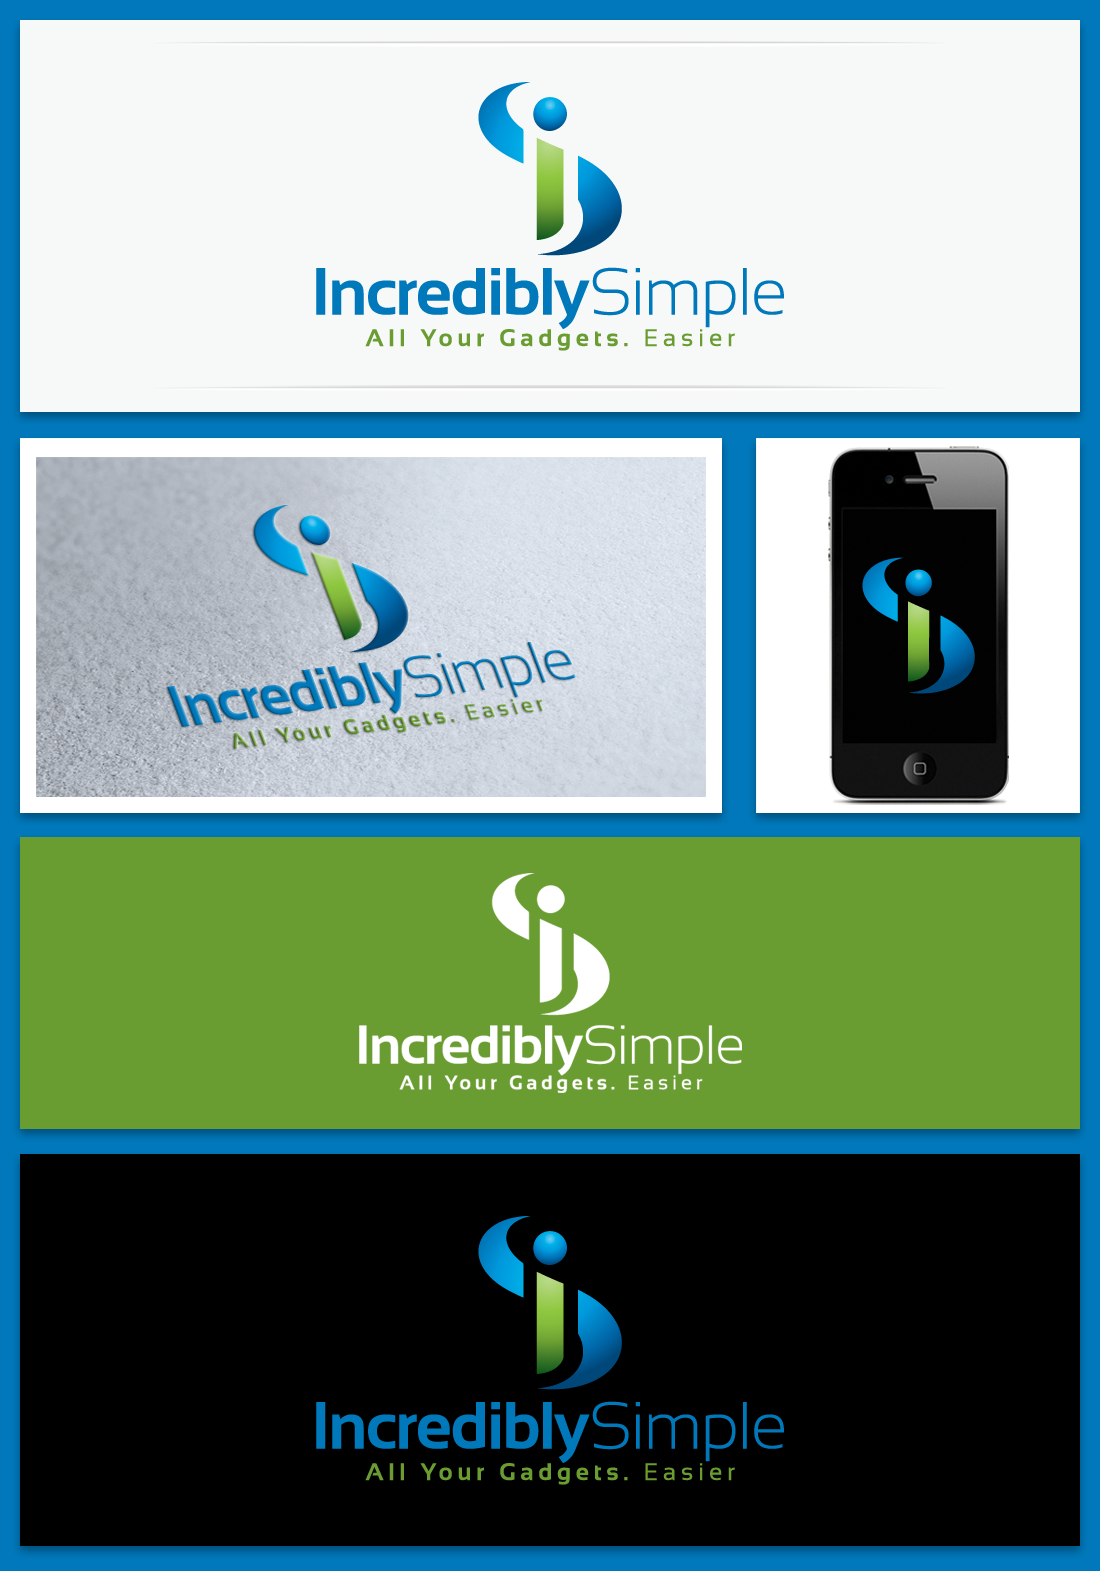 Logo wanted for IncrediblySimple